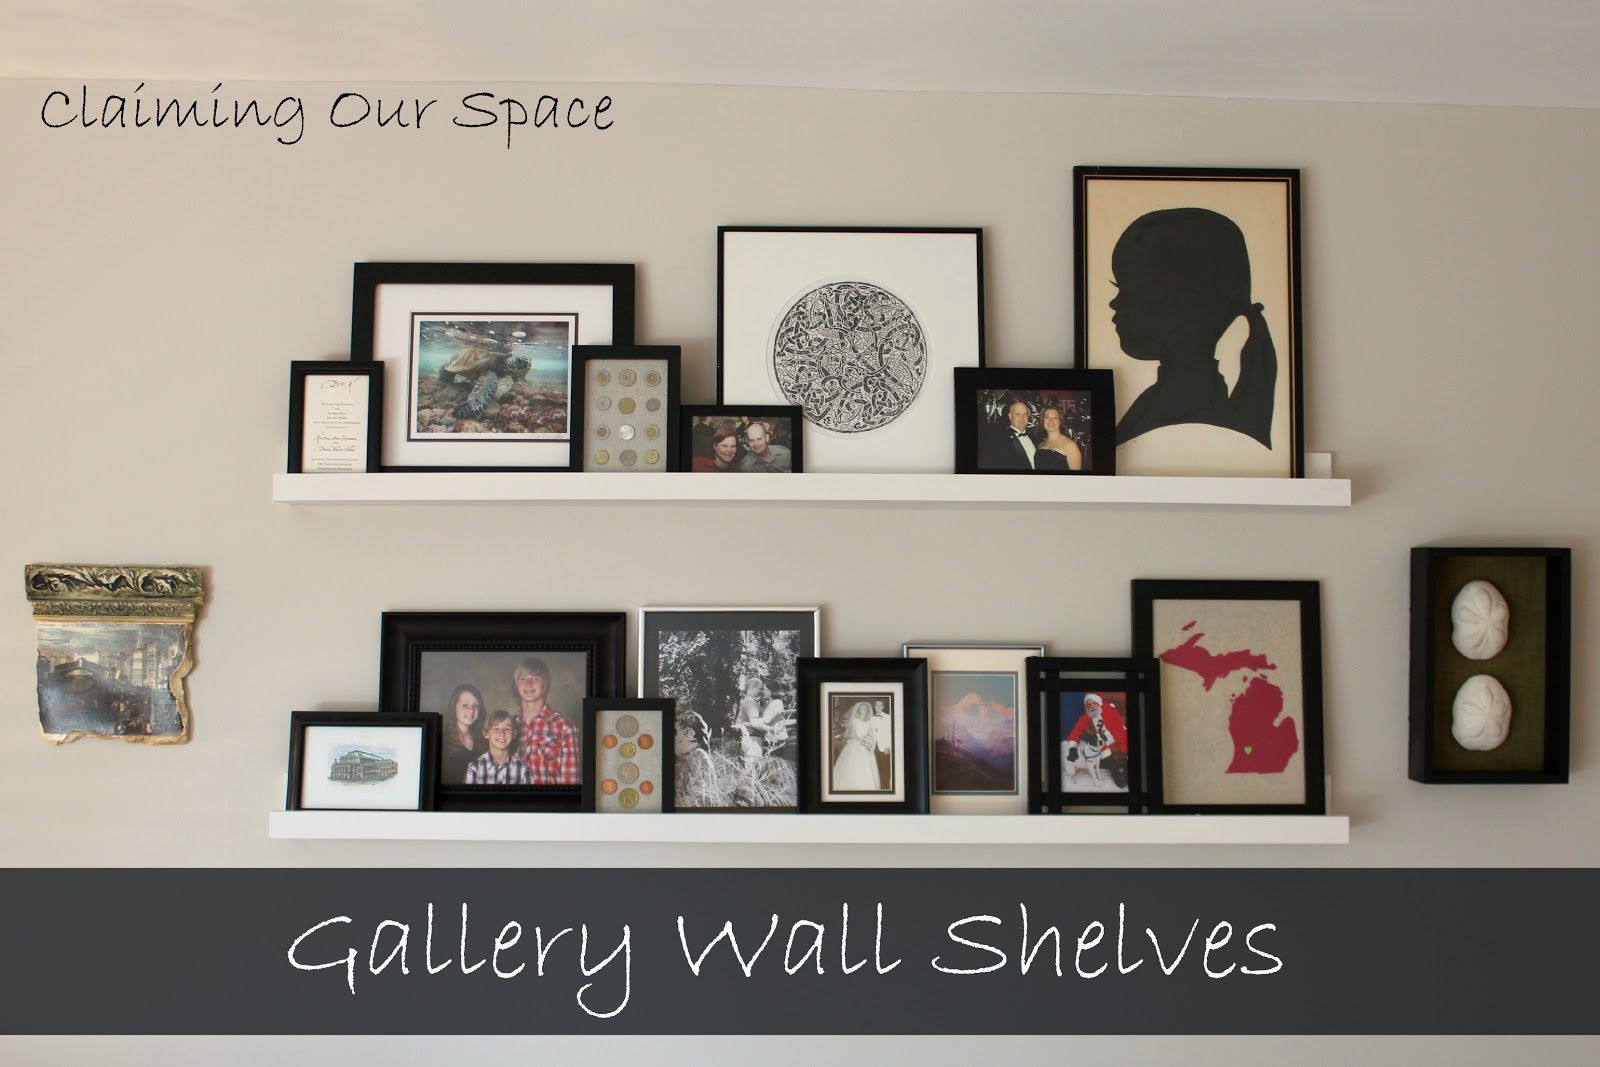 Gallery Wall Shelves wall shelves to display rocks | home decor | pinterest | shelves